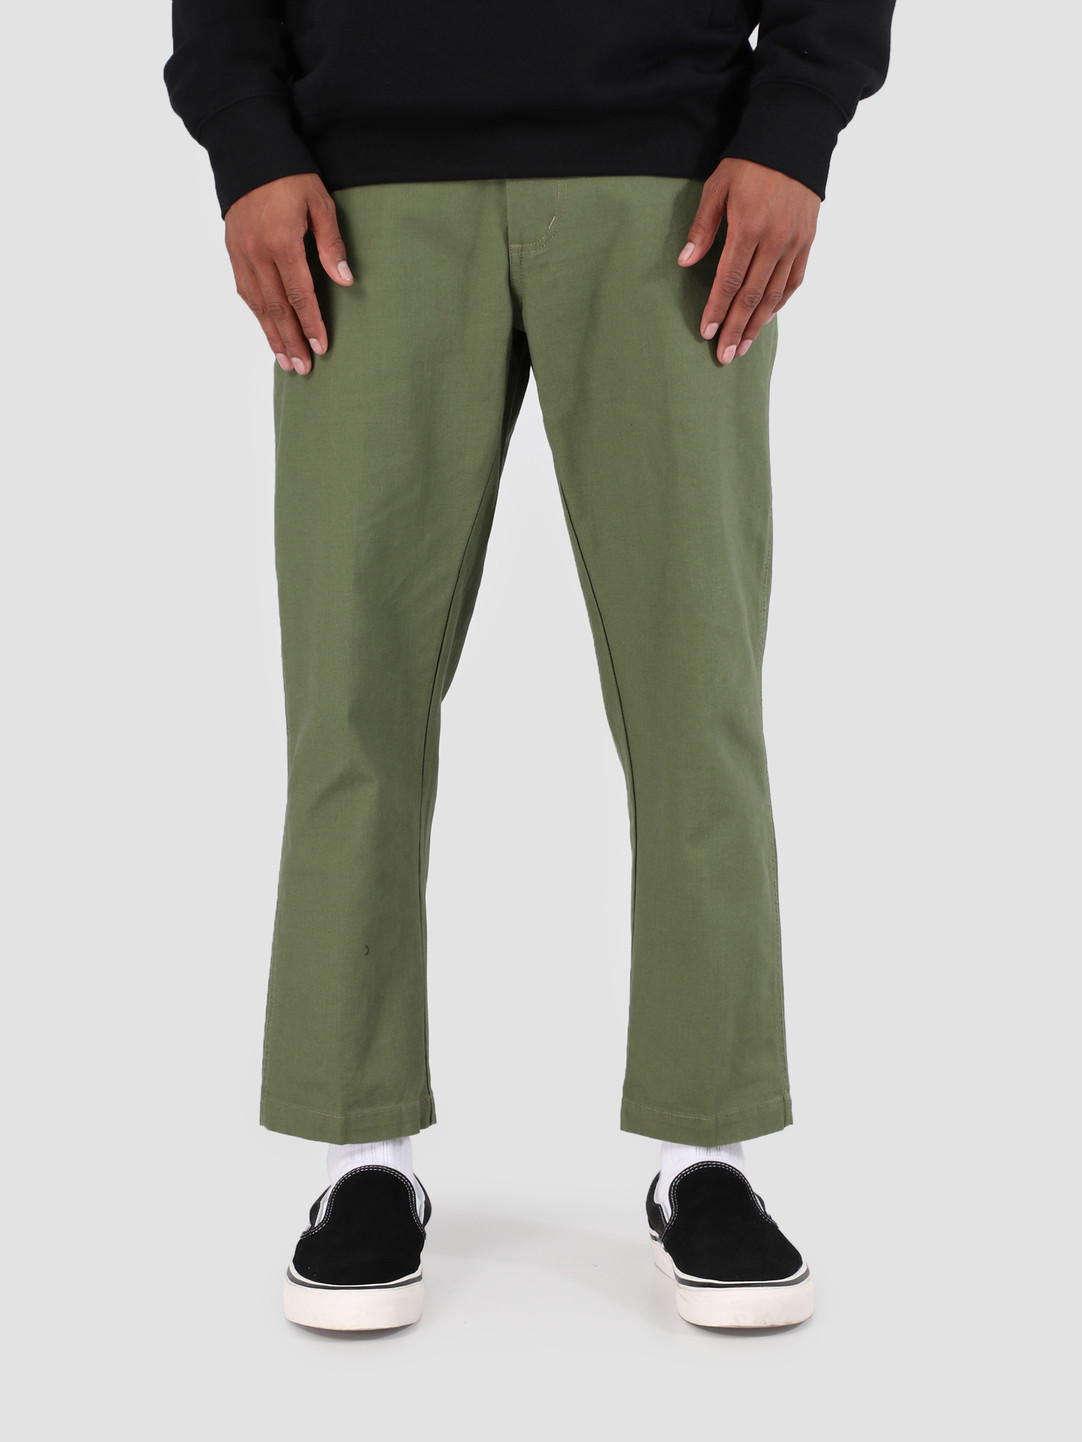 Obey Obey Straggler Carpenter Pant III Army 142020116-ARM